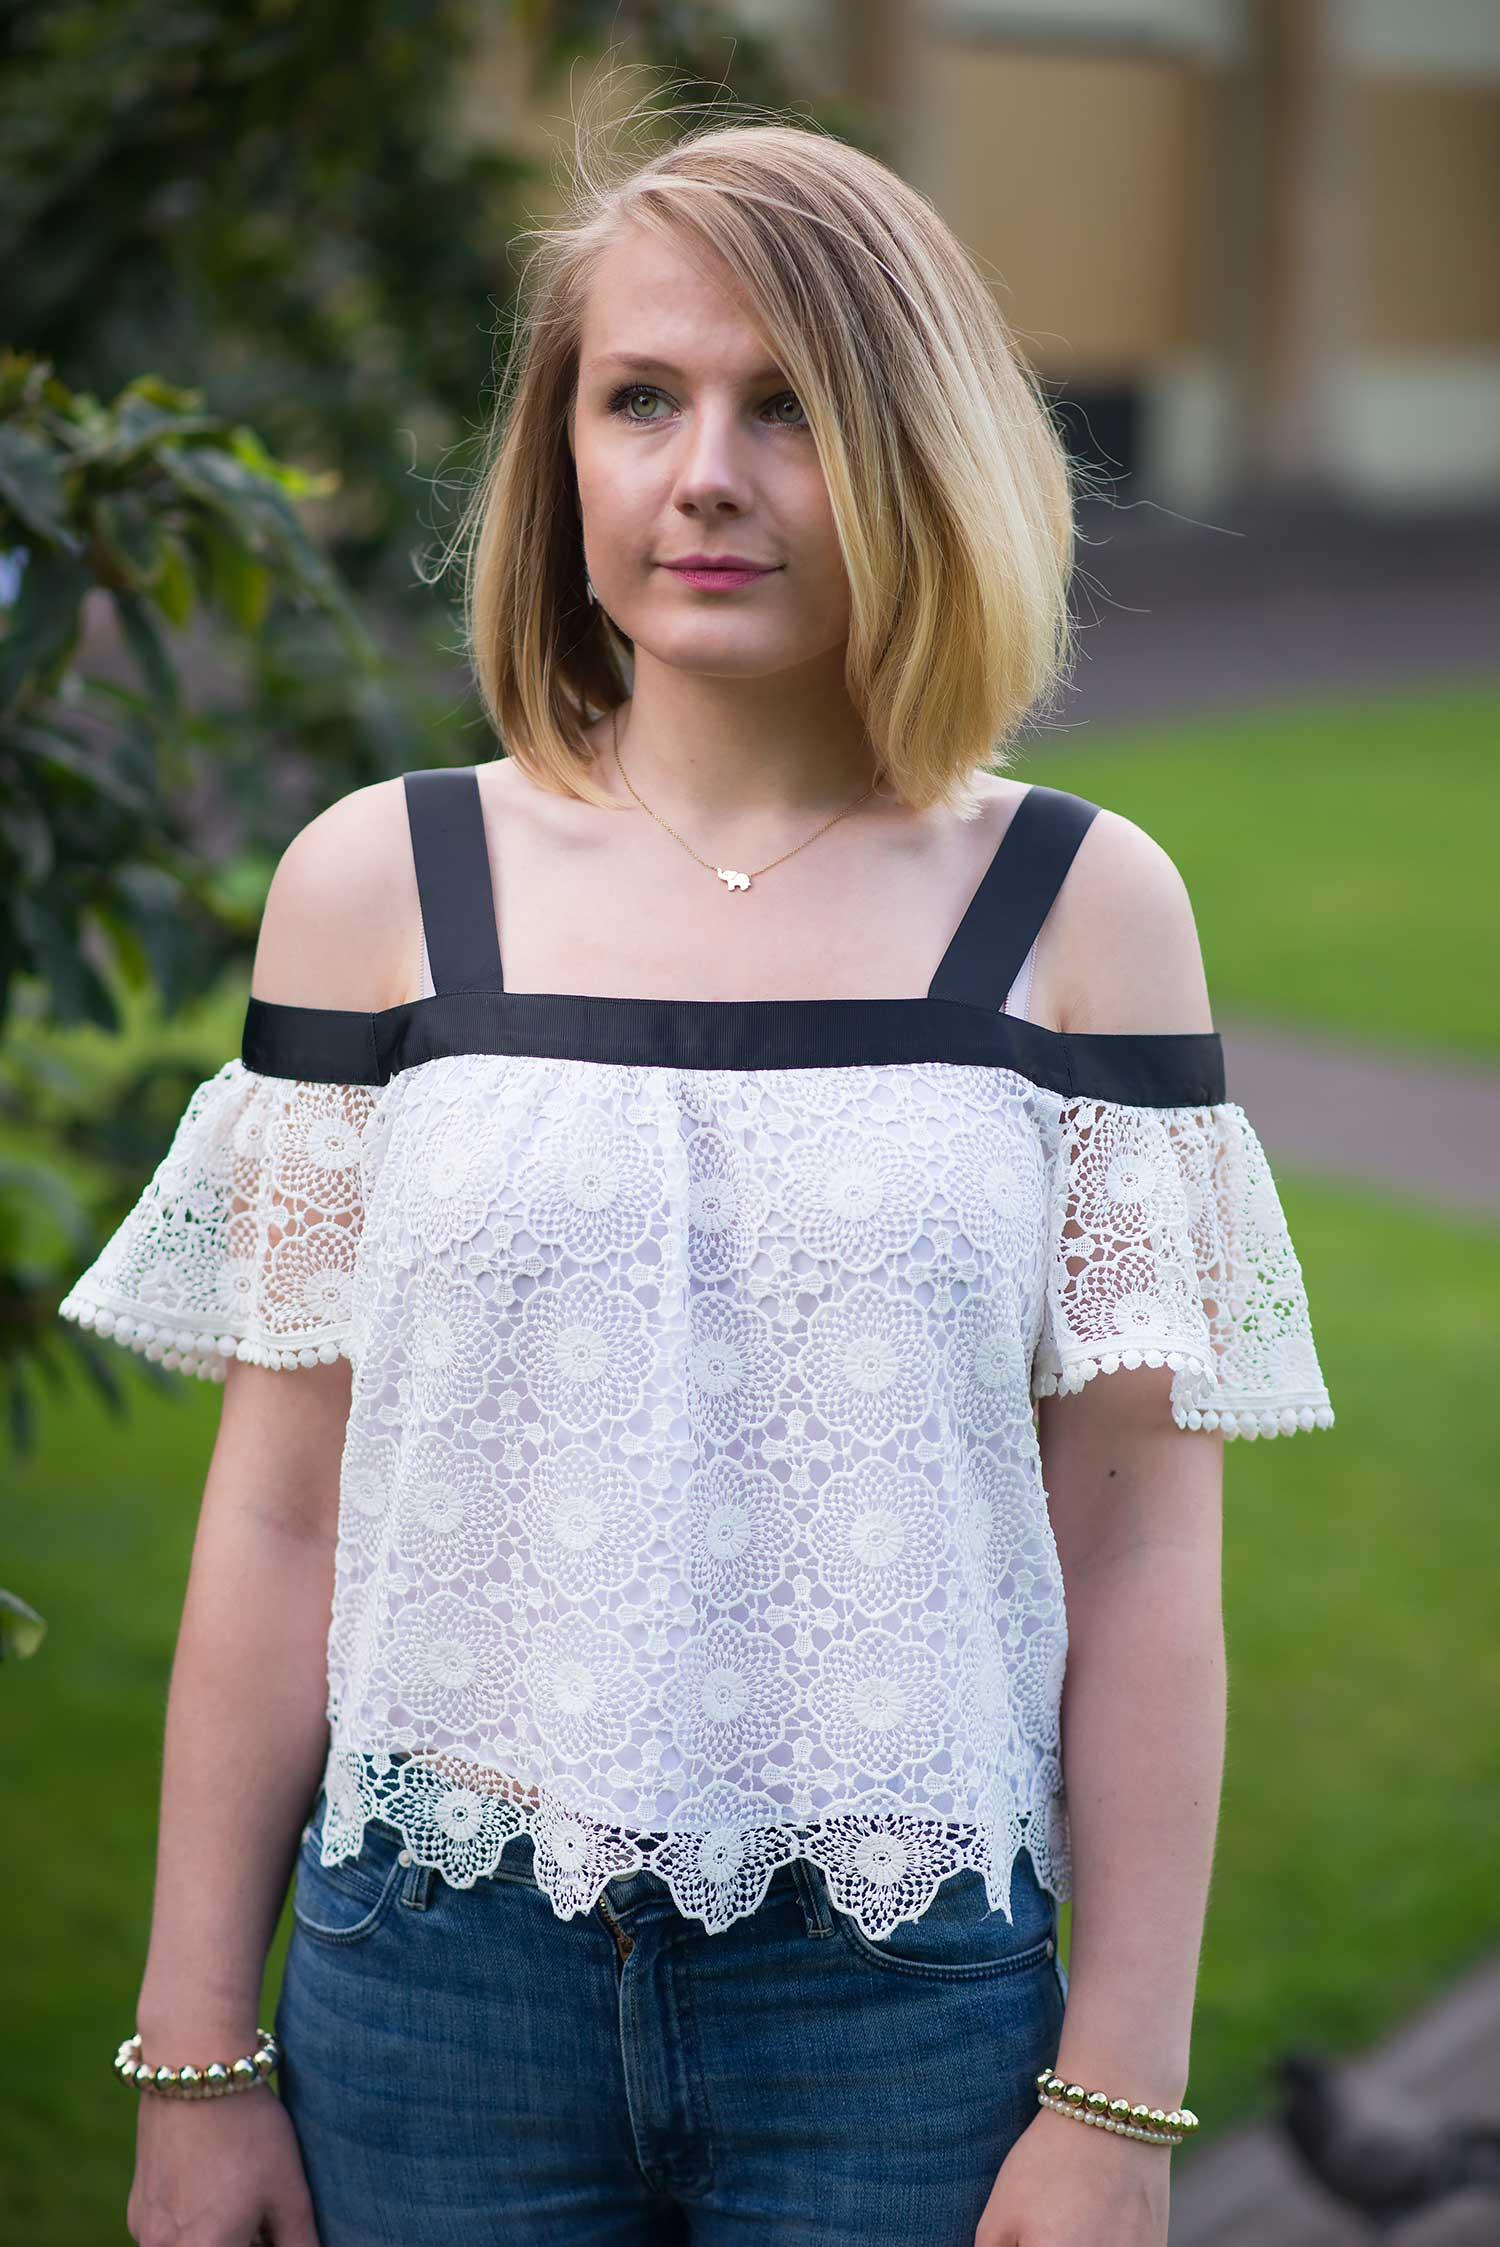 fashion-blogger-topshop-cold-shoulder-lace-top